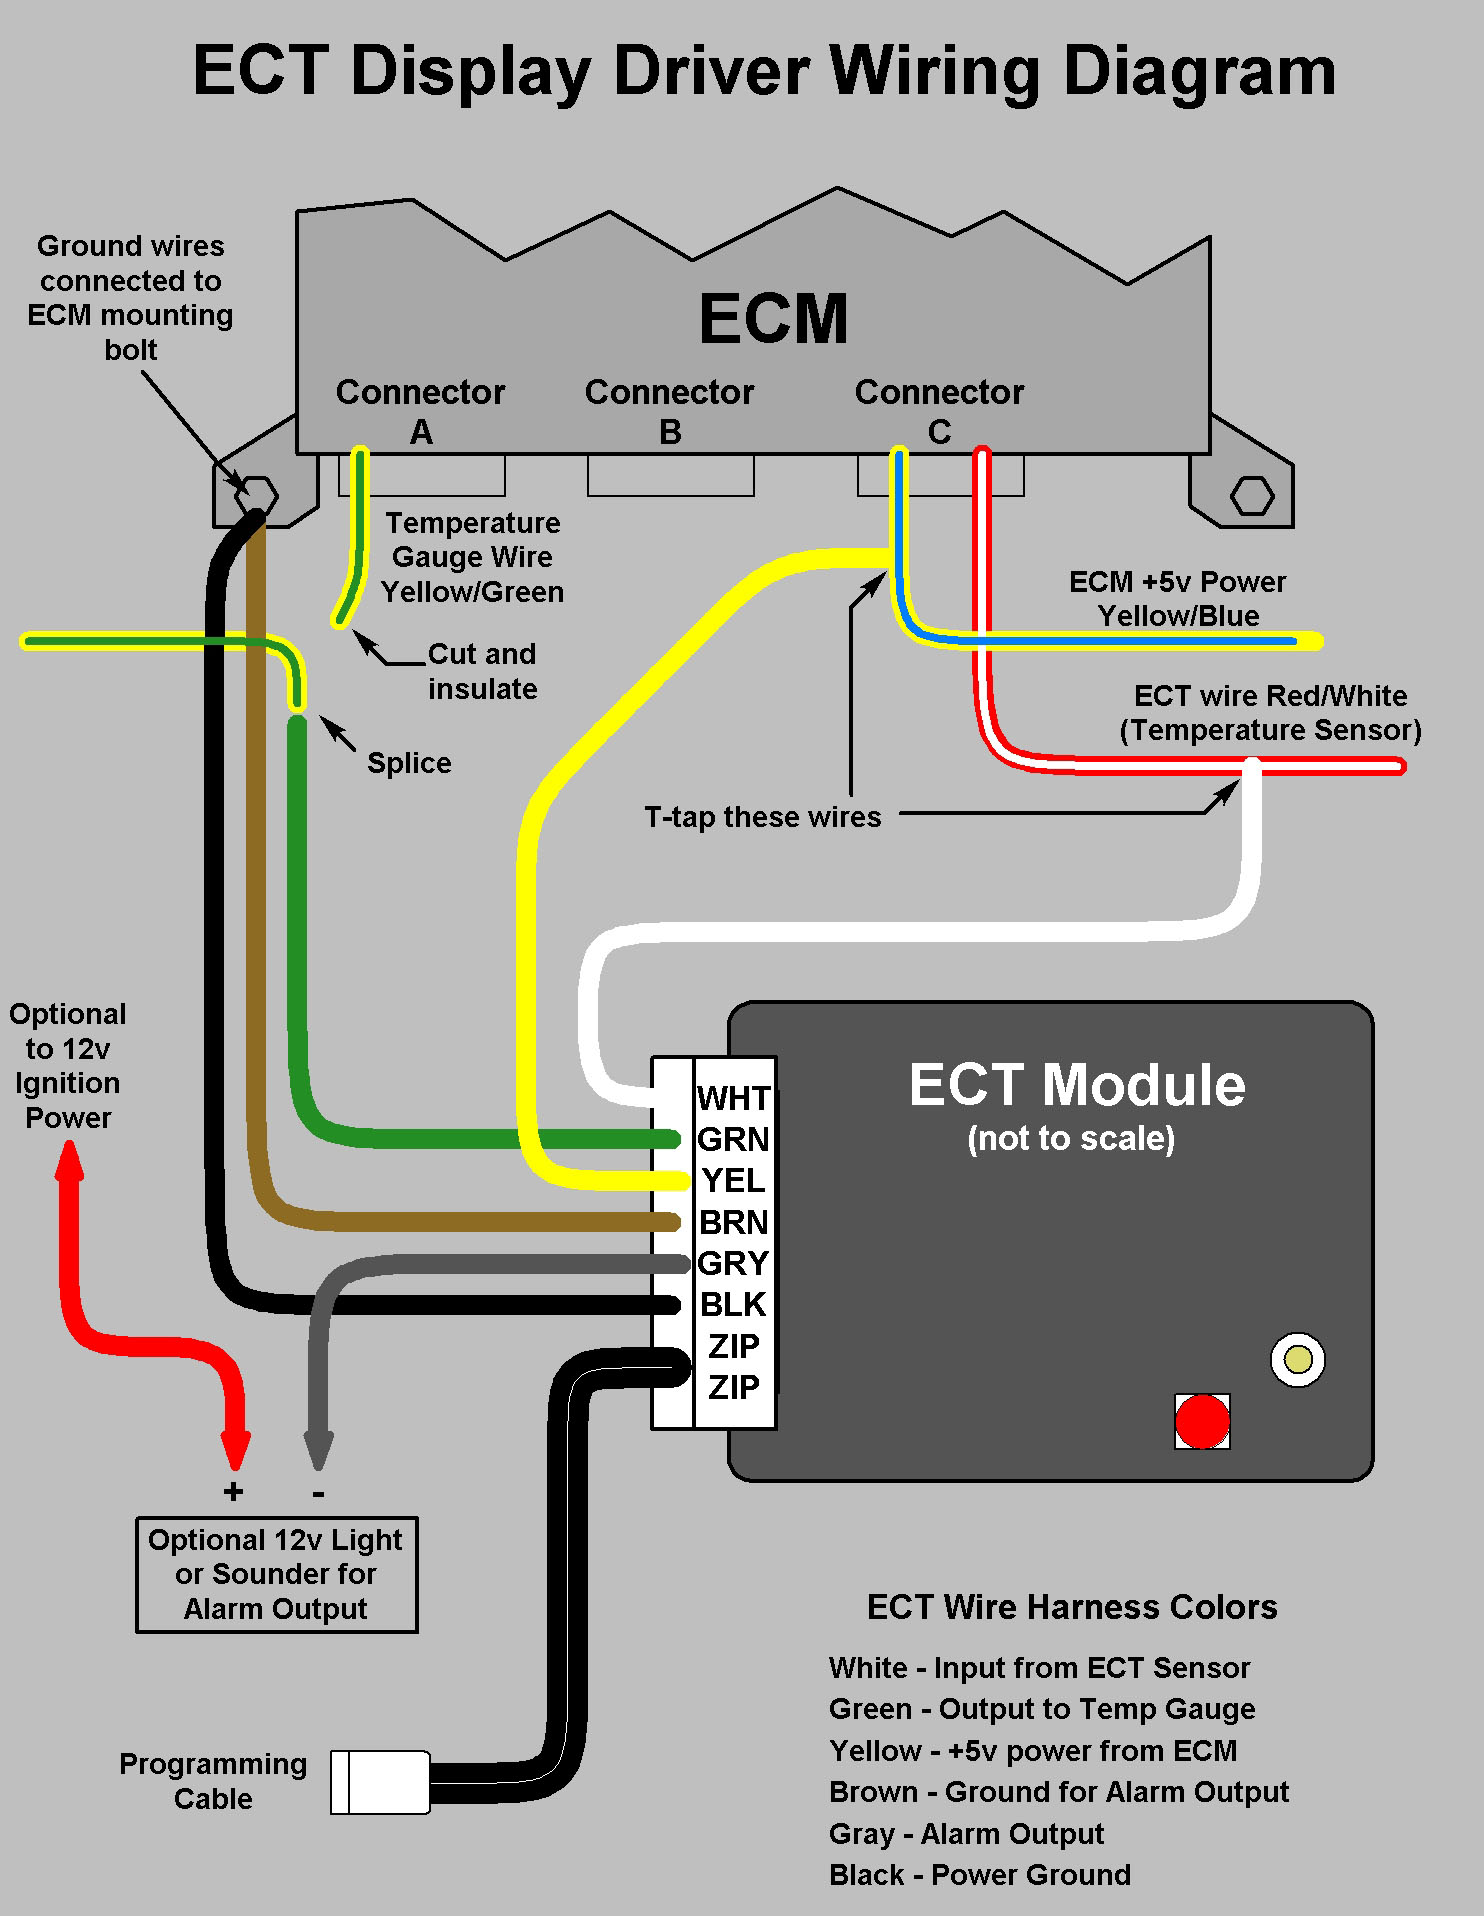 ECT wiring diagram ems wiring diagram medical diagram \u2022 free wiring diagrams life ems 8860 wiring diagram at love-stories.co